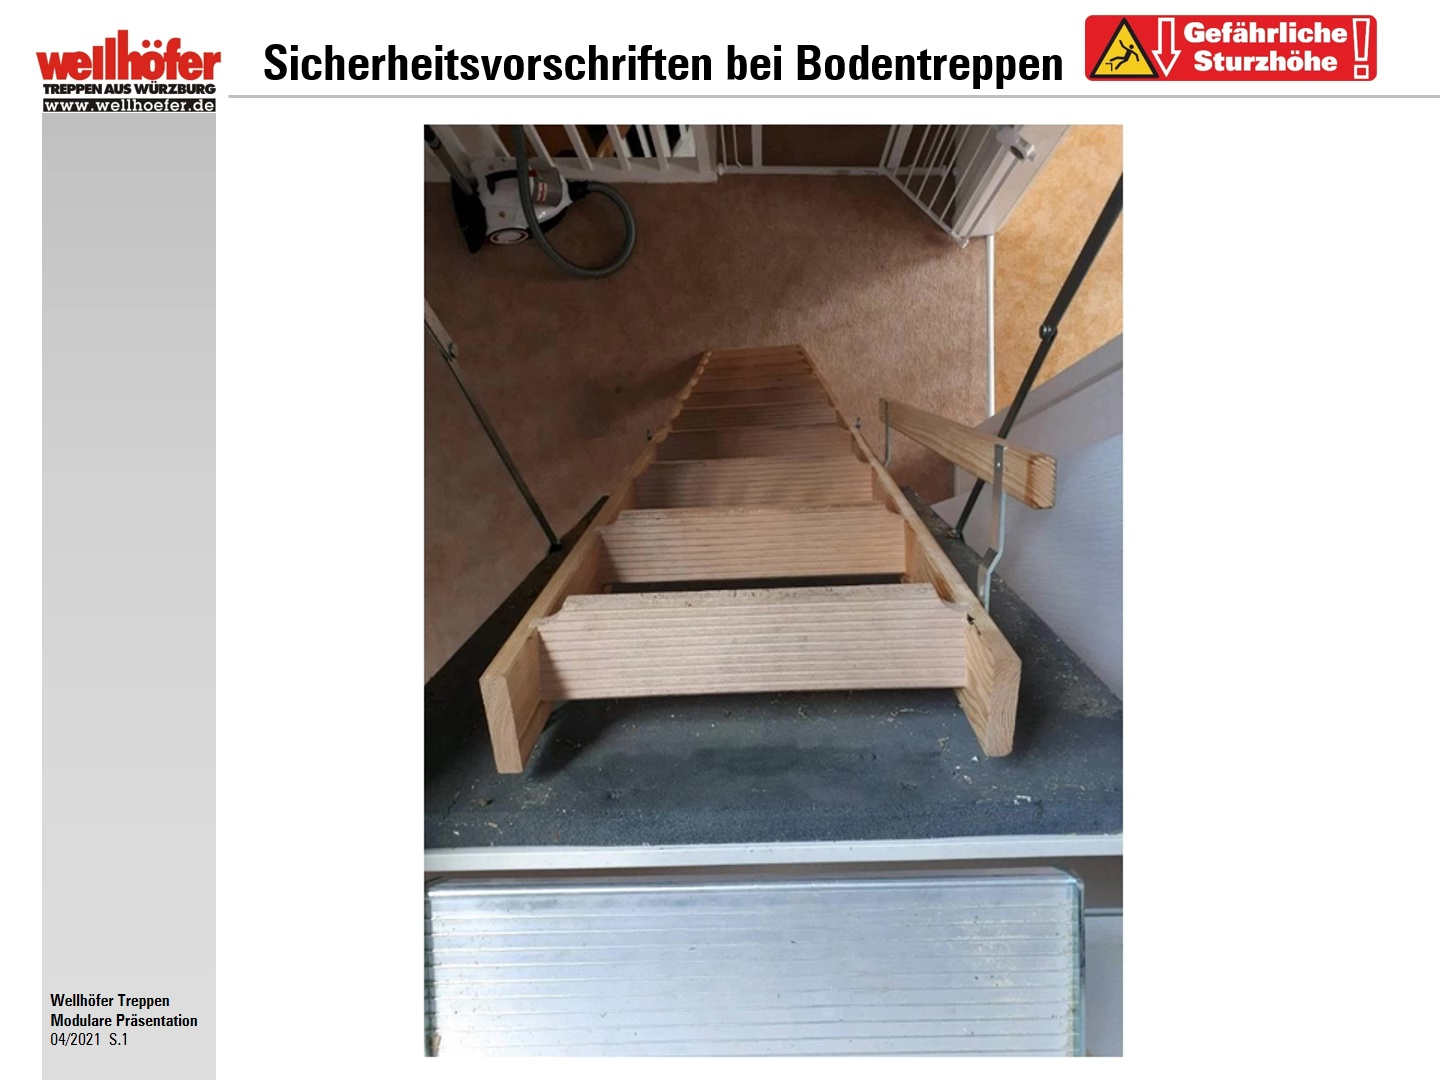 Tutorial_Bodentreppen_Sicherheit